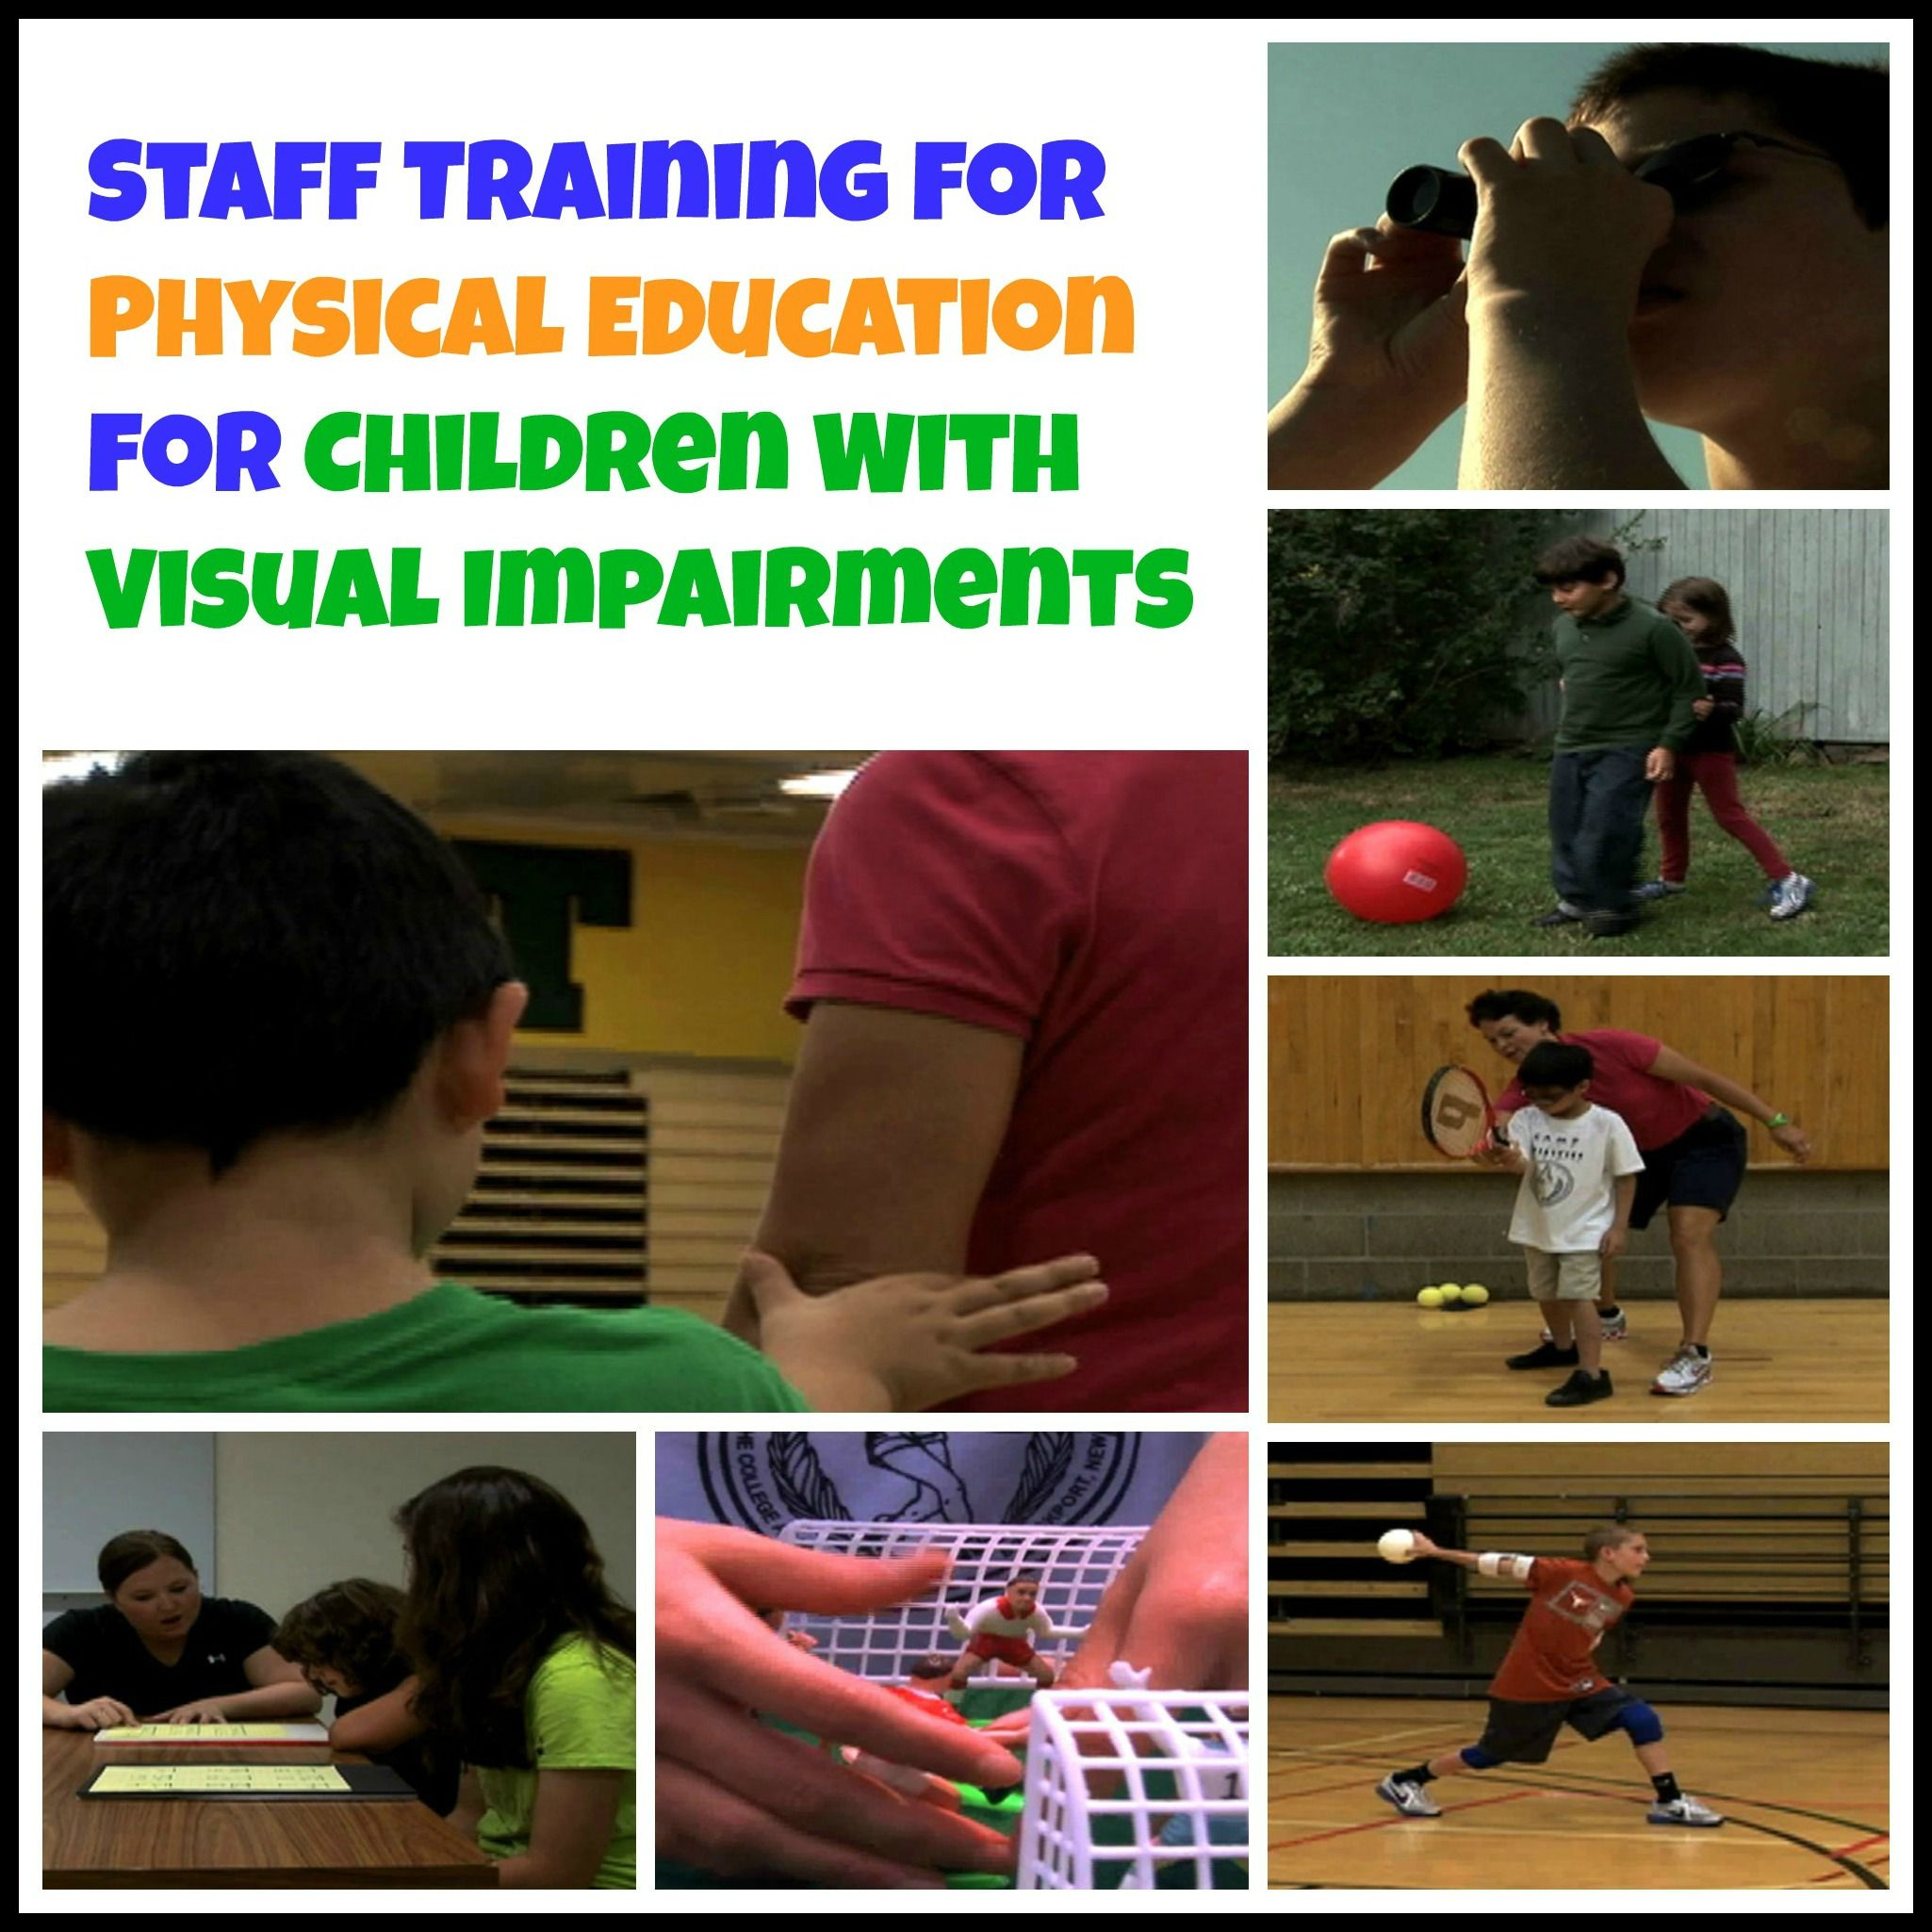 Staff Training For Physical Education For Children With